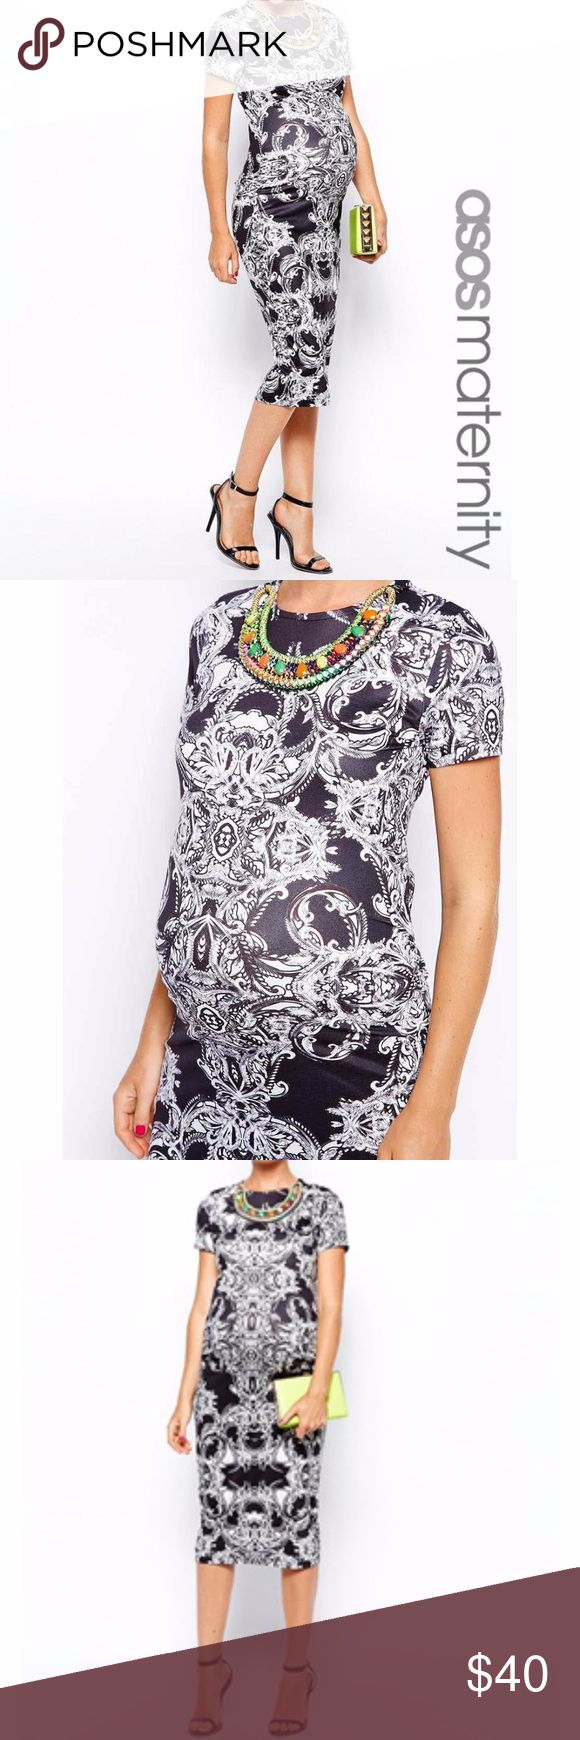 ASOS Maternity Body-Conscious Dress Baroque Print ASOS Maternity Body-Conscious Dress Baroque Print - Size 6.  Originally there was a necklace attached to the dress that I removed because I wanted the freedom to switch out the necklace as I wished. ASOS Maternity Dresses Midi